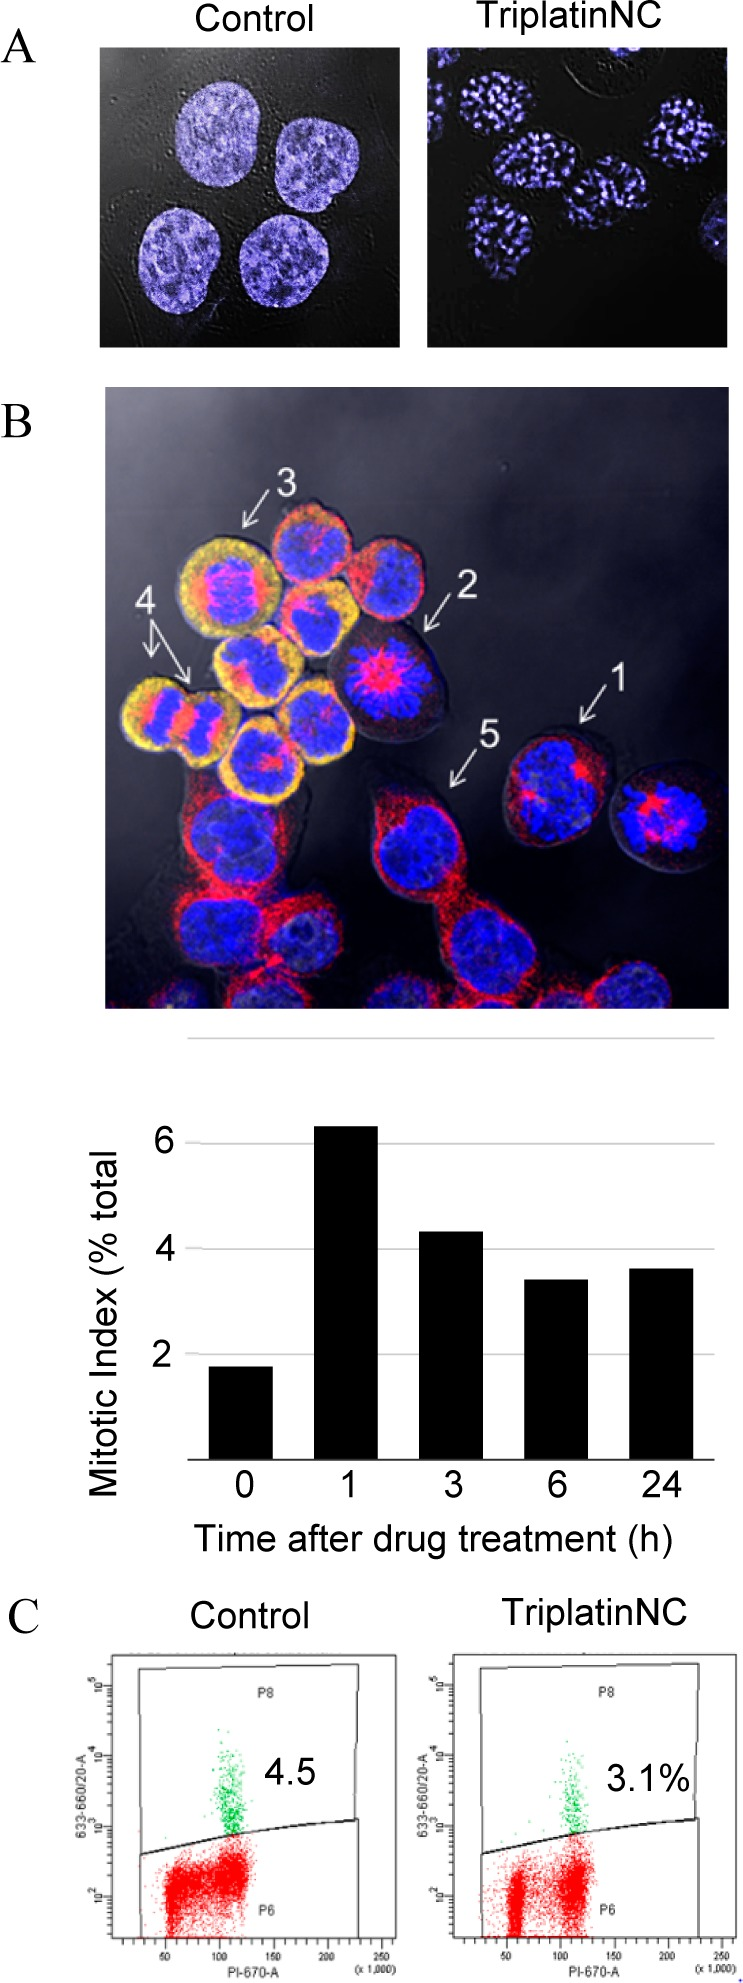 (A) Confocal microscopy; HCT116 cells were stained with DAPI after treatment with 20 μM TriplatinNC for 24 h and visualized by confocal microscopy. (B) (Top) Mitotic index assay; image of (1) early pro-metaphase, (2) late pro-metaphase, (3) anaphase, (4) late anaphase/telophase, and (5) interphase as determined by DAPI DNA stain (blue); β-tubulin (red); and nucleophosmin/B23 (yellow) immunostaining. (Bottom) The mitotic index was derived as the number of cells in all mitotic phases combined (P + M + A + T) and divided by the total number of cells. n > 500 cells per time treatment ( > 1000 cells counted total for two repeat experiments). (C) Mitotic checkpoint assay; HCT116 were treated with or without 20 μM TriplatinNC, fixed, and incubated with phospho-histone H3 (Ser10), followed by <t>antirabbit</t> <t>Alexa</t> 647 secondary antibody and PI staining. Ten thousand events were analyzed by flow cytometry. Shown is a representative of two independent experiments.